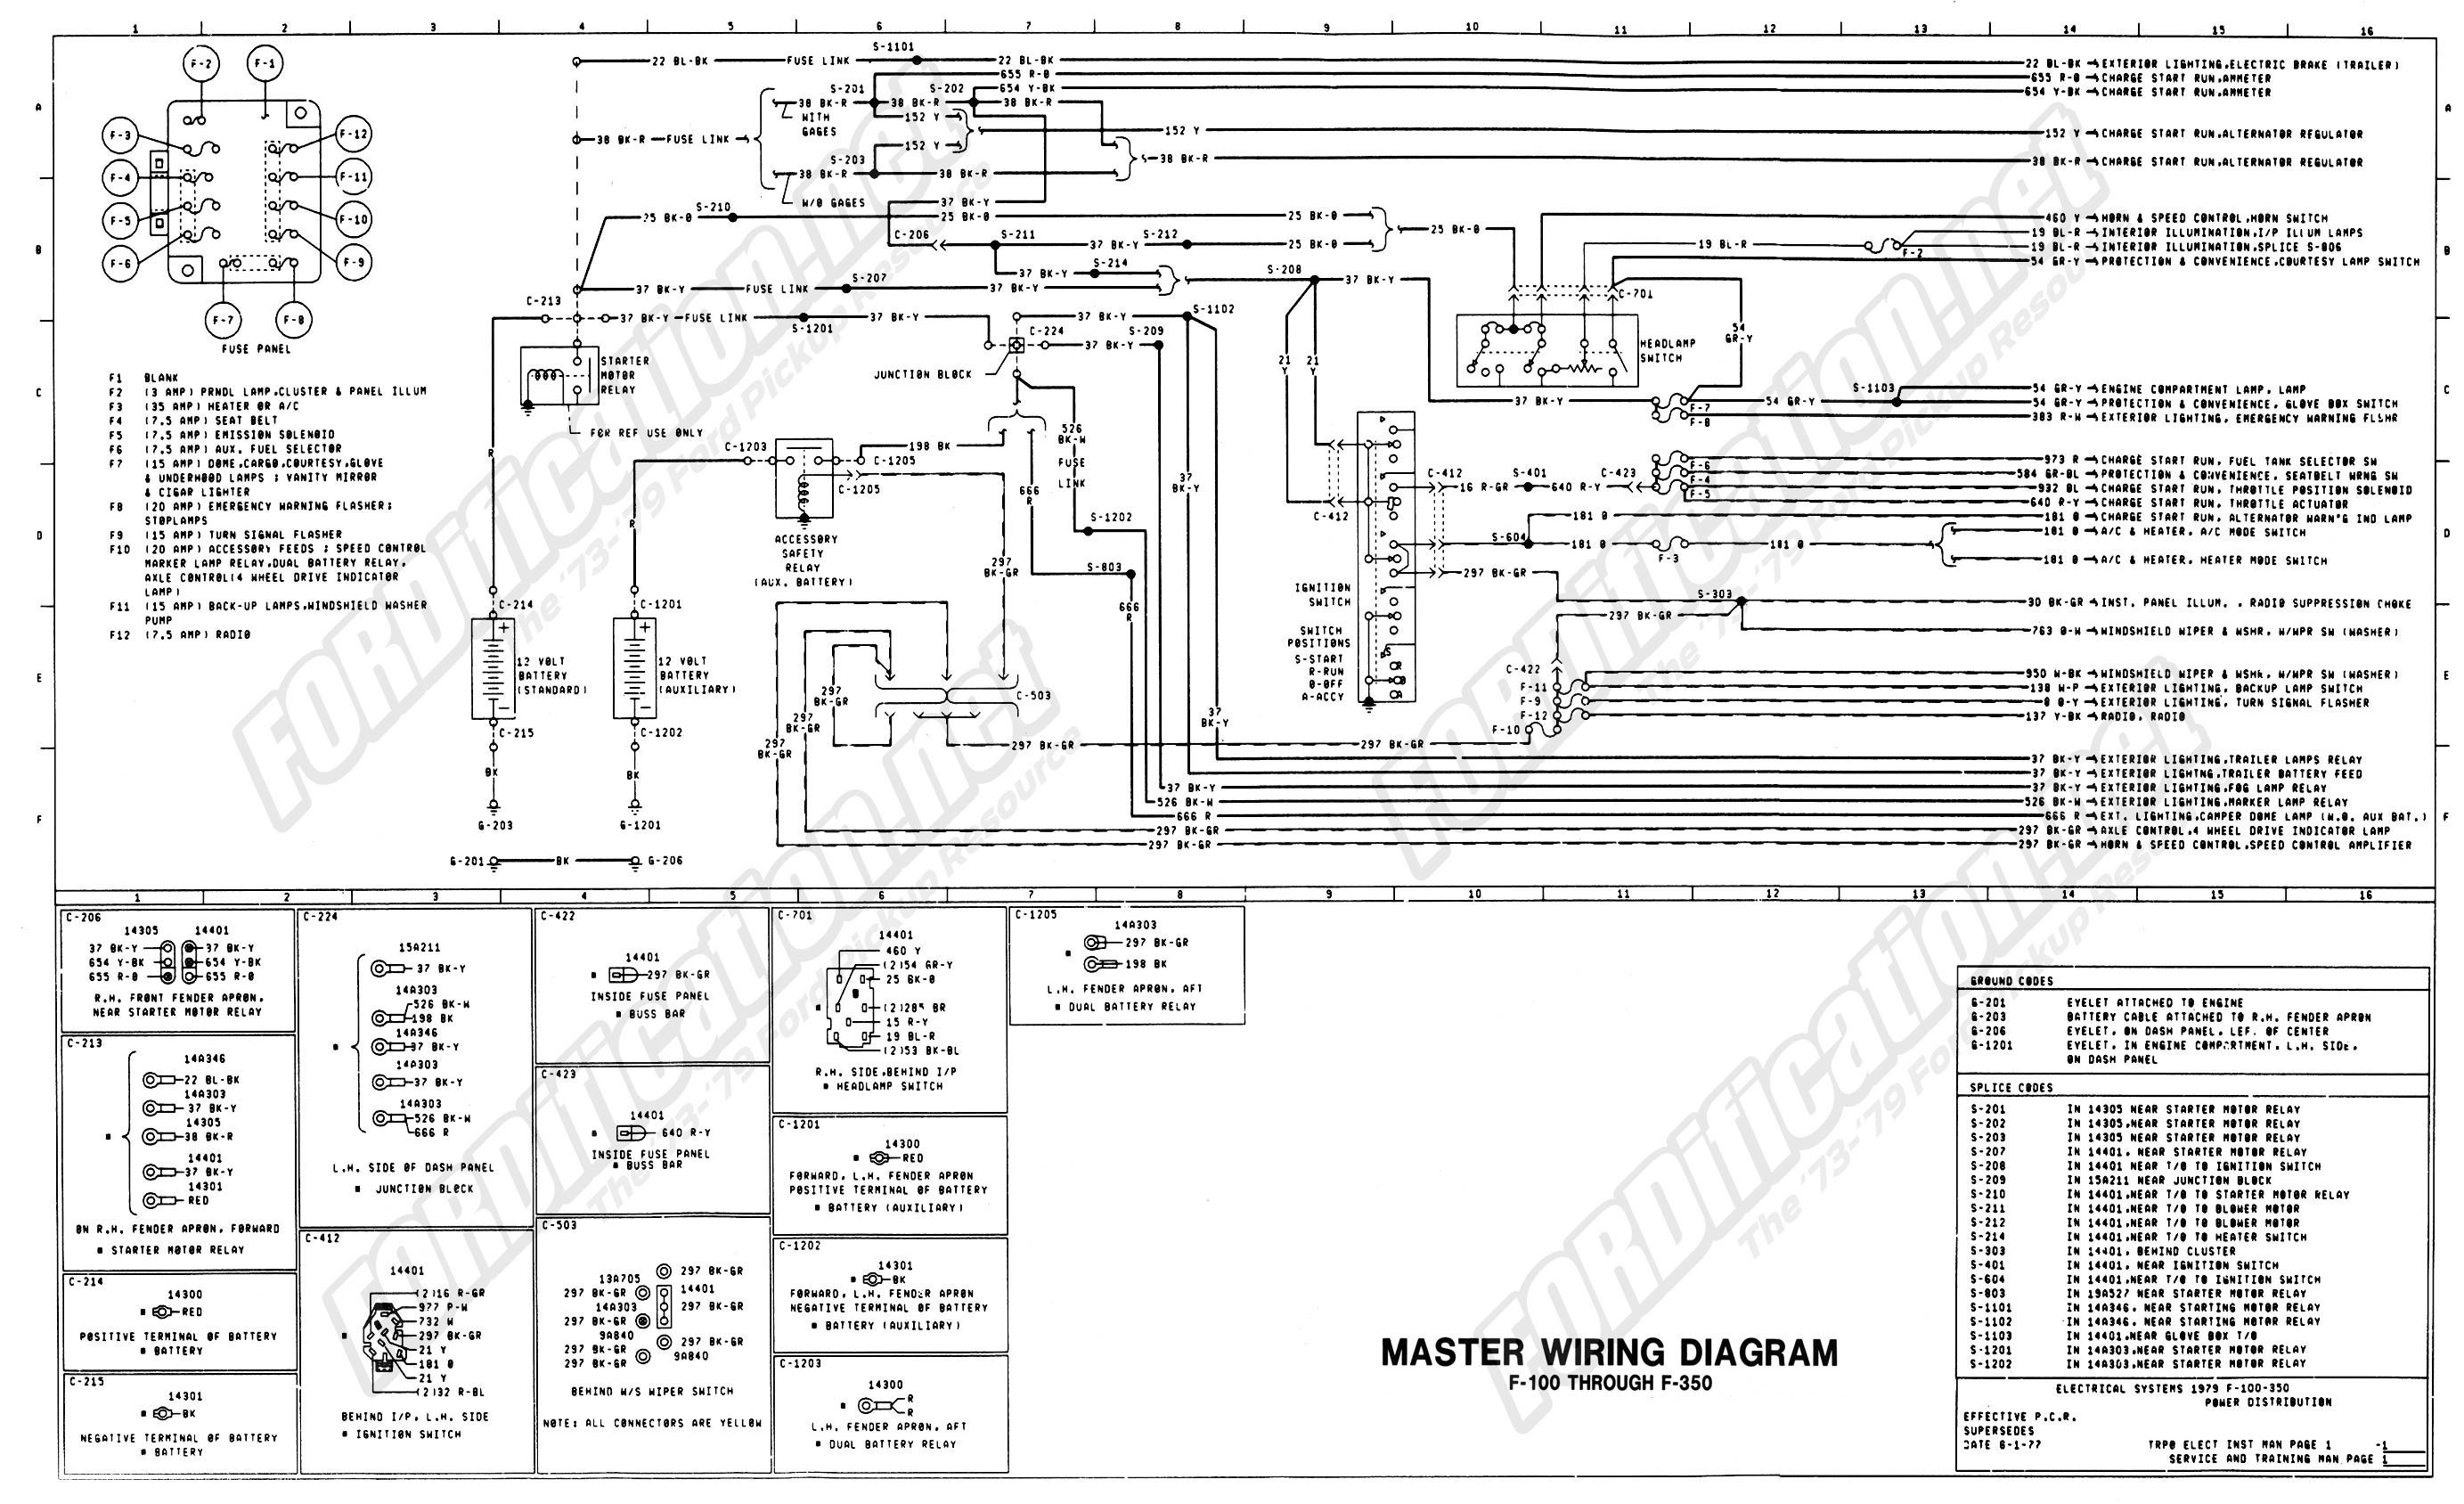 International 8500 Fuse Box Diagram Diagram] Record Usa 8100 Wiring Diagram Full Version Hd Of International 8500 Fuse Box Diagram